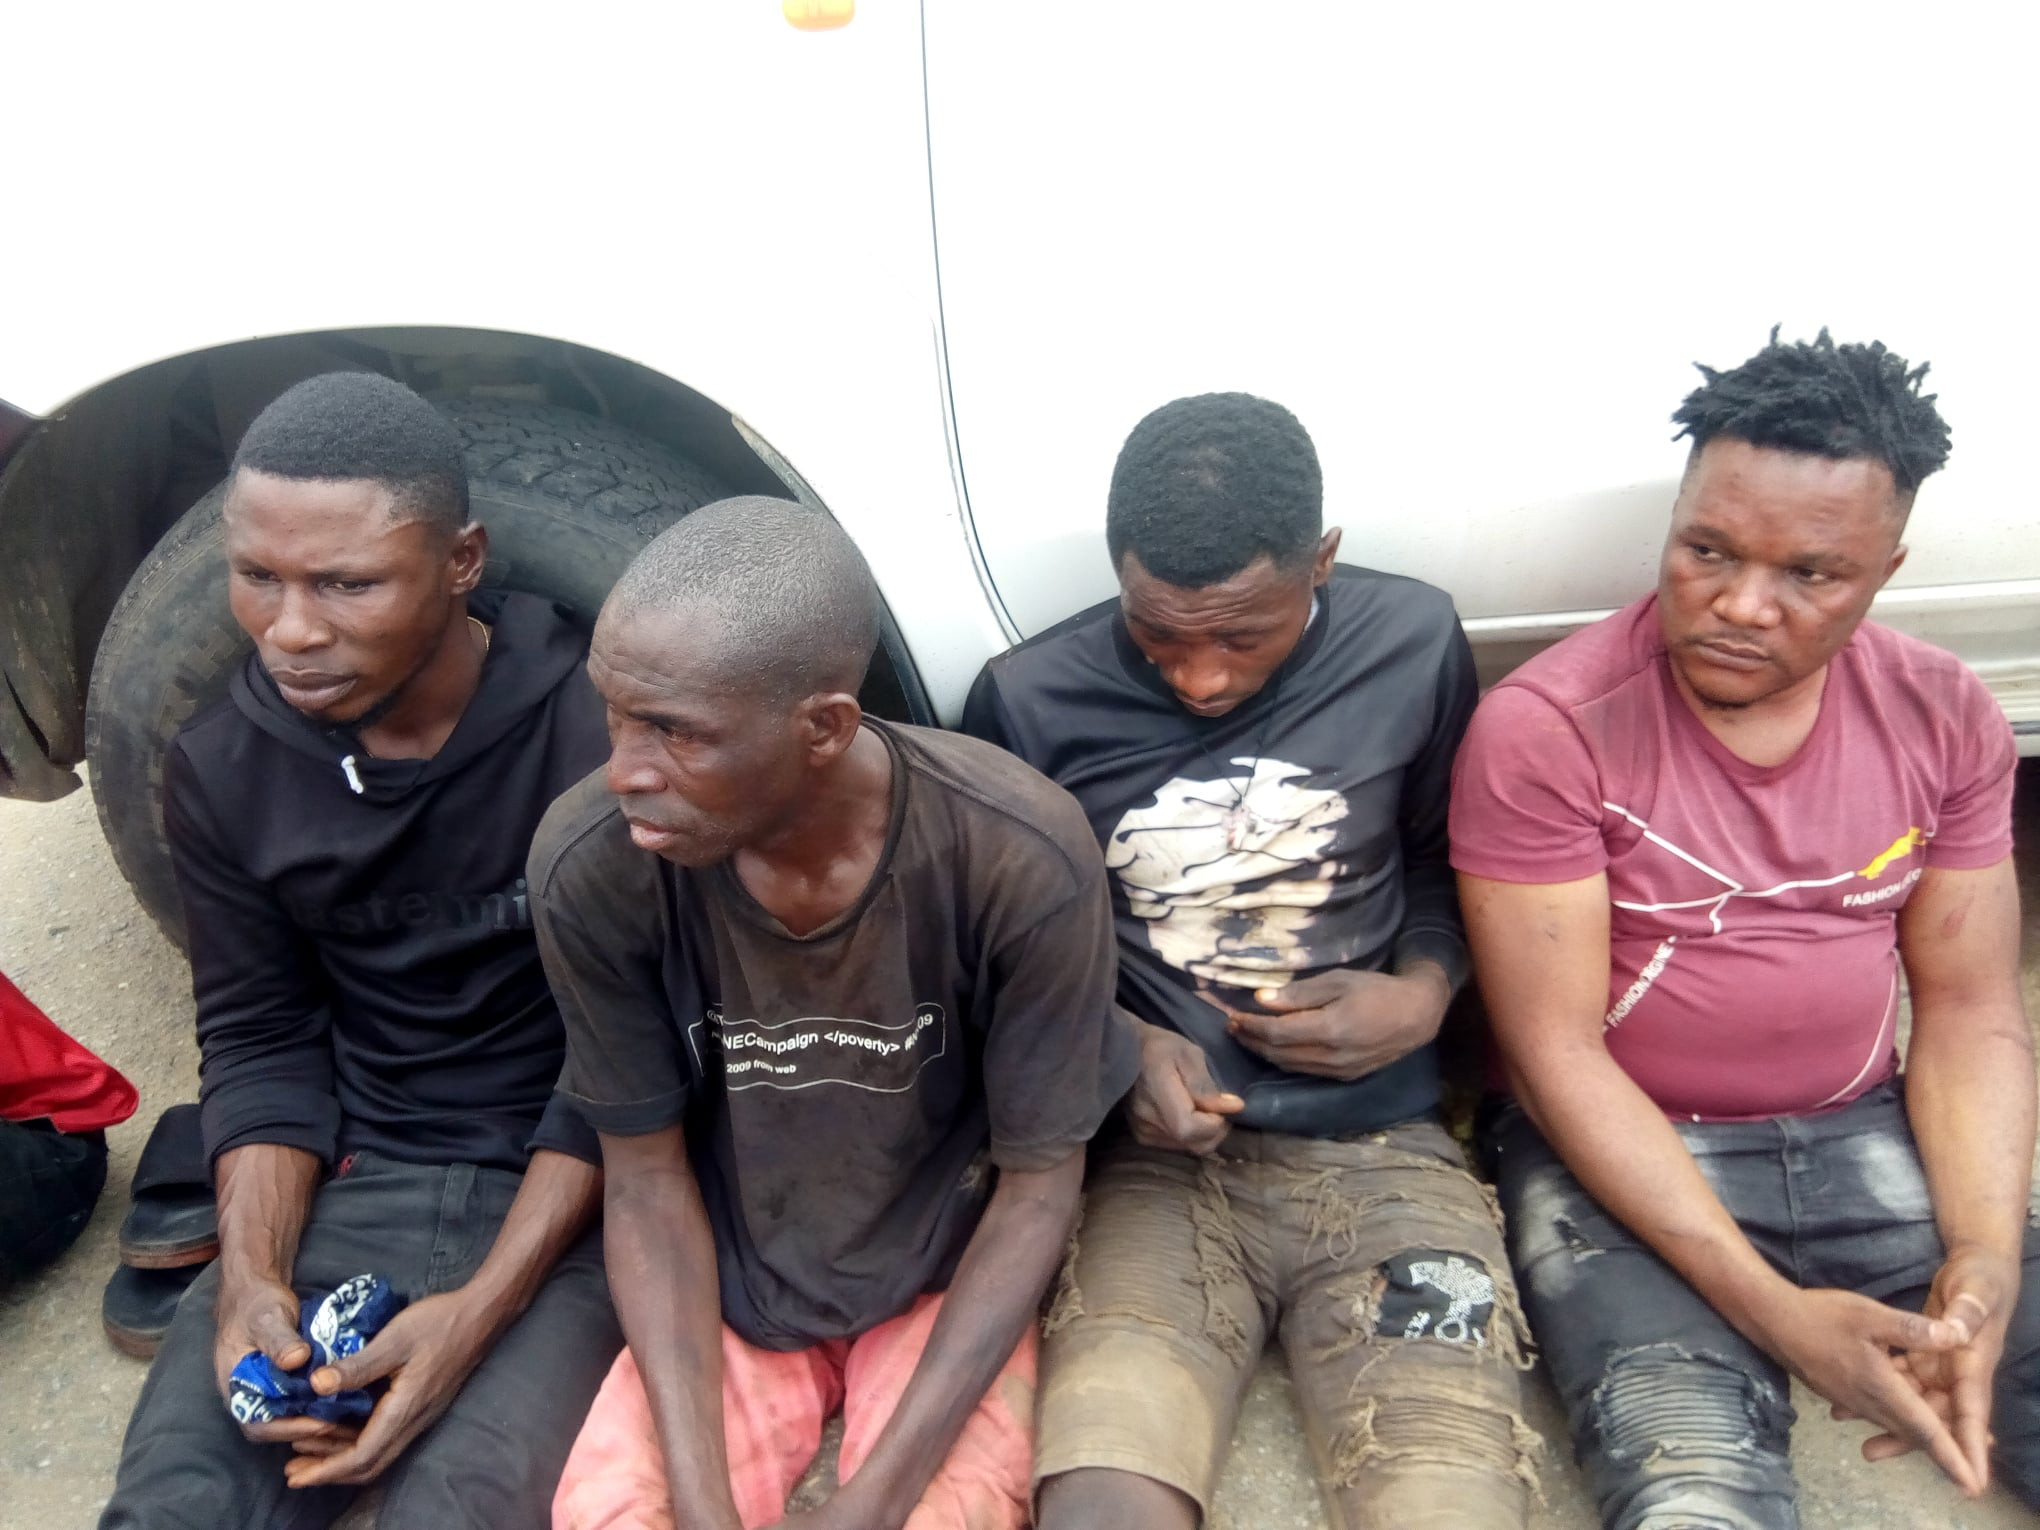 #EndSARS: Edo Police arrest 9 suspected hoodlums who burgled a rice warehouse in Benin